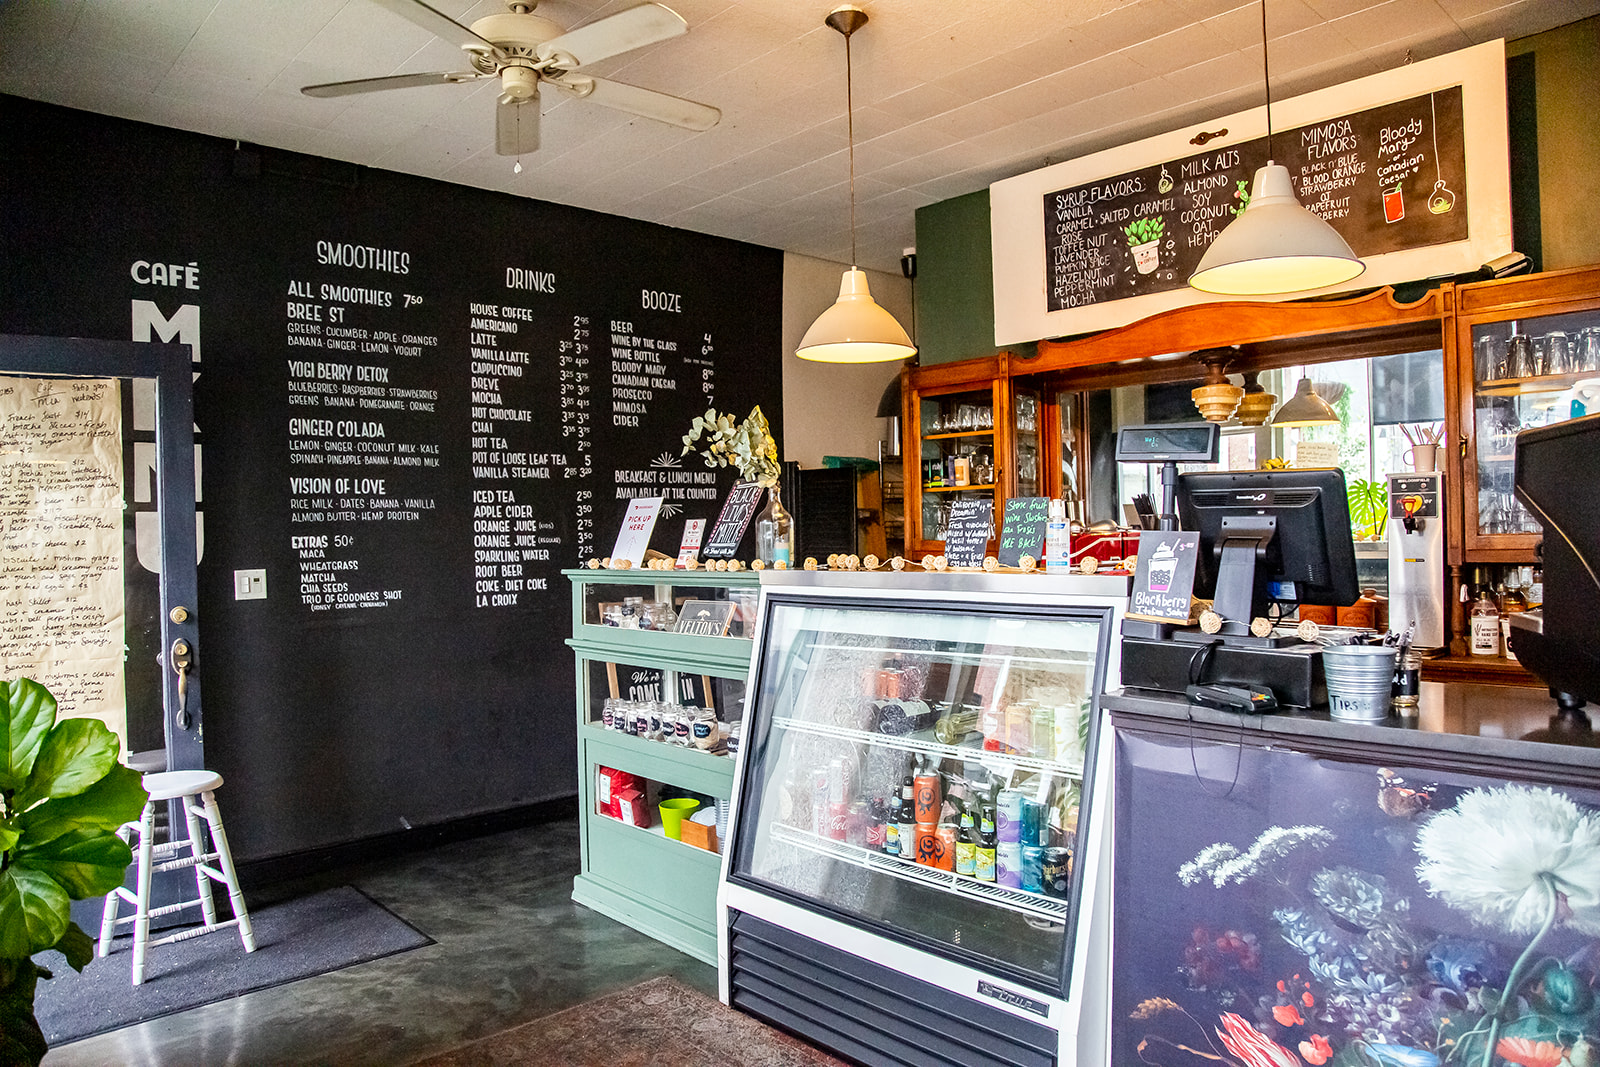 "The cafe features a variety of handcrafted coffees, fresh smoothies and alcoholic drinks, as well as seasonal, locally-sourced and ethical cuisine - every dish is prepared in house by Mia herself. Cafe Mia is tucked away near the West Seattle Junction on SW Oregon Street. The perfect spot for brunch after hitting the farmers market on Sunday! Find them on Instagram{&nbsp;}<a  href=""https://www.instagram.com/cafe.mia/?hl=en"" target=""_blank"" title=""https://www.instagram.com/cafe.mia/?hl=en"">@cafe.mia</a>. (Image:{&nbsp;}Samantha Witt / Seattle Refined)"